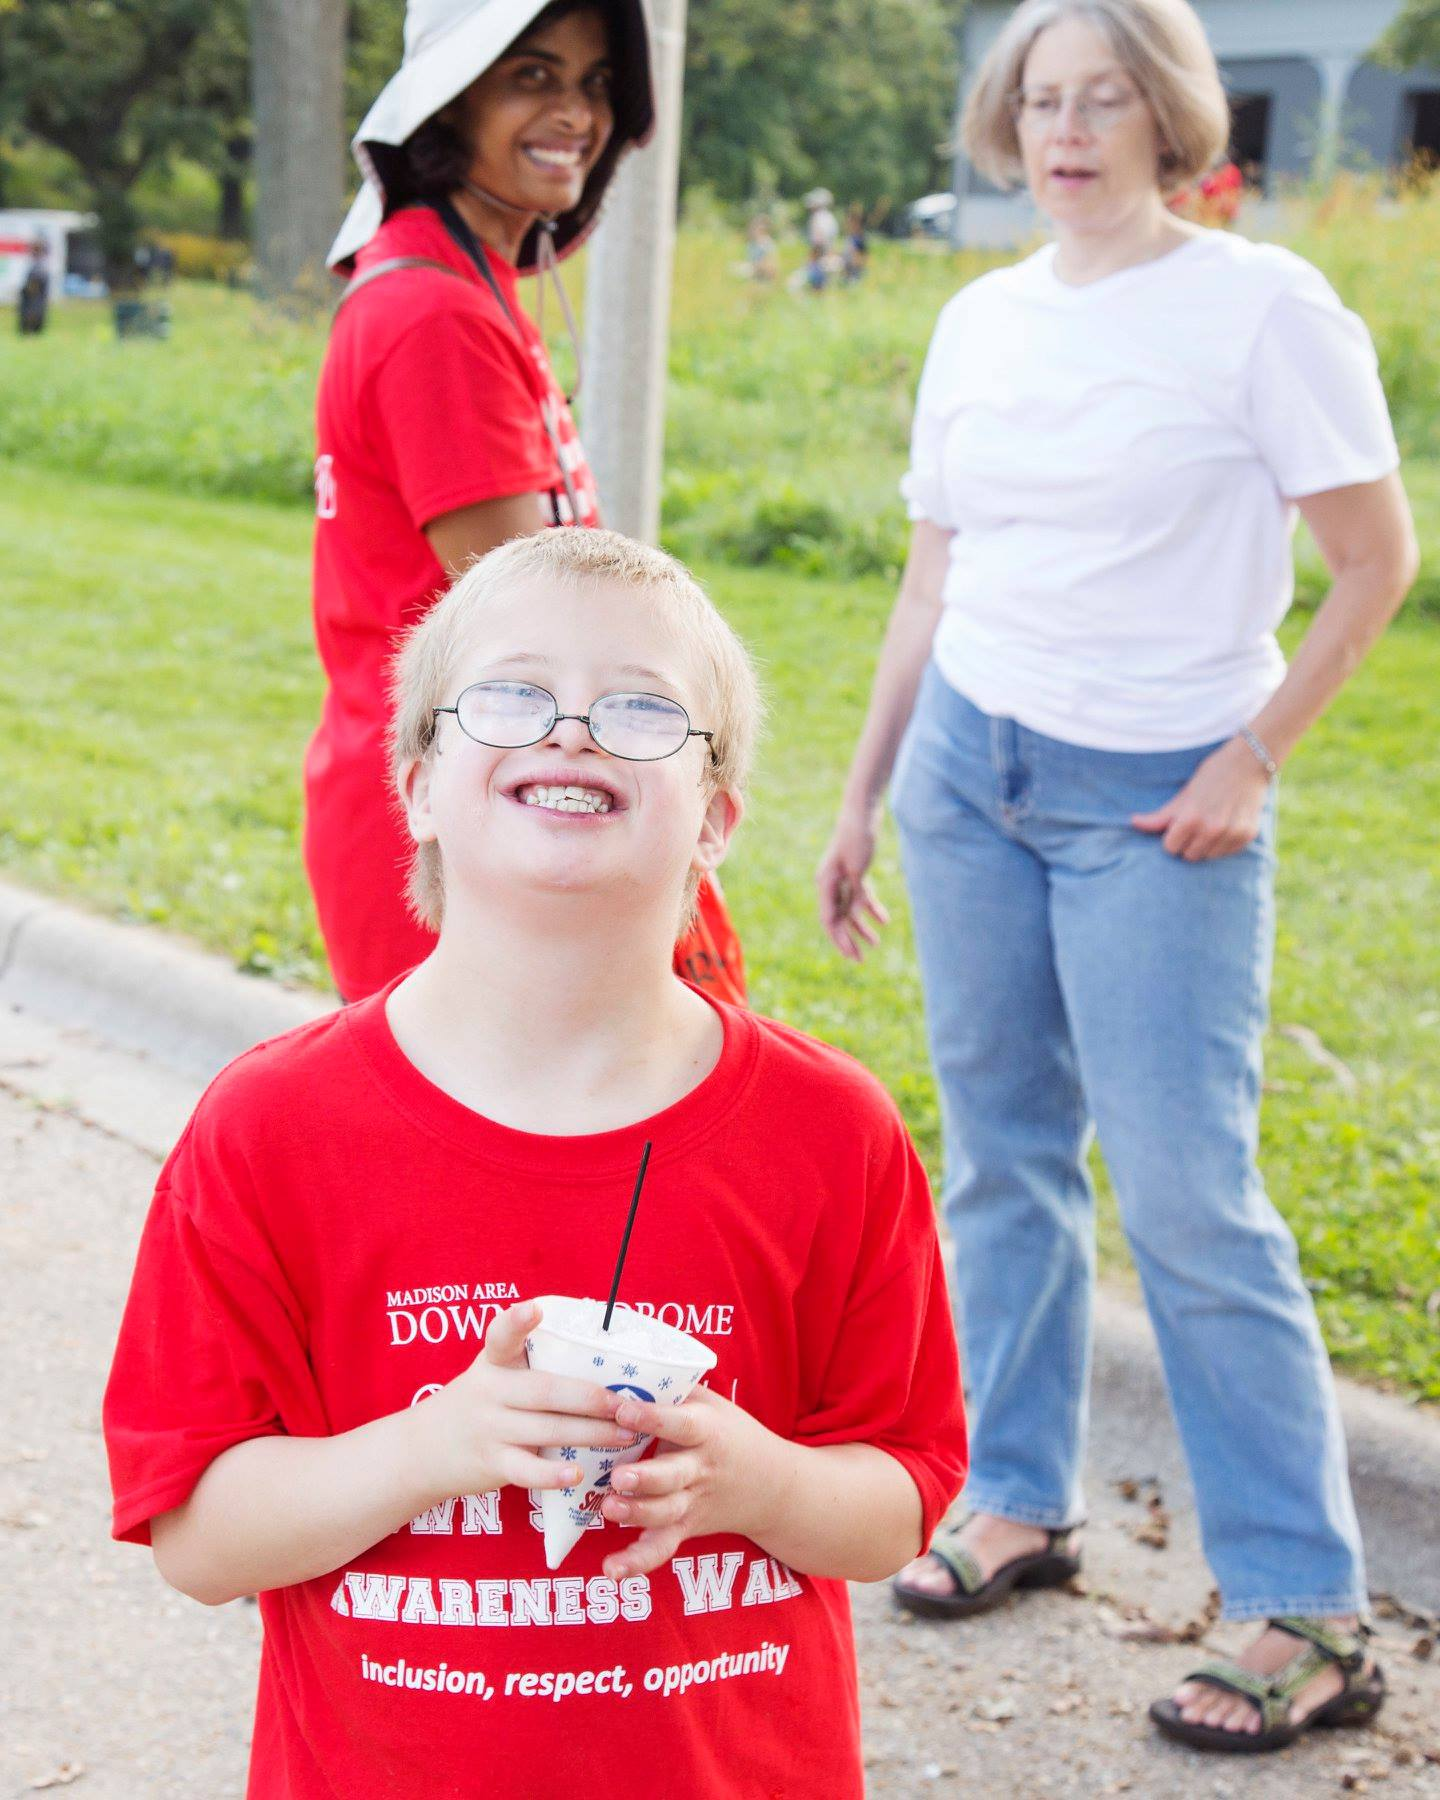 Awareness Programming - MADSS hosts an annual Down Syndrome Awareness Walk to raise awareness of Down Syndrome throughout South Central Wisconsin. In addition, we engage the community through advertising campaigns and other awareness activities.